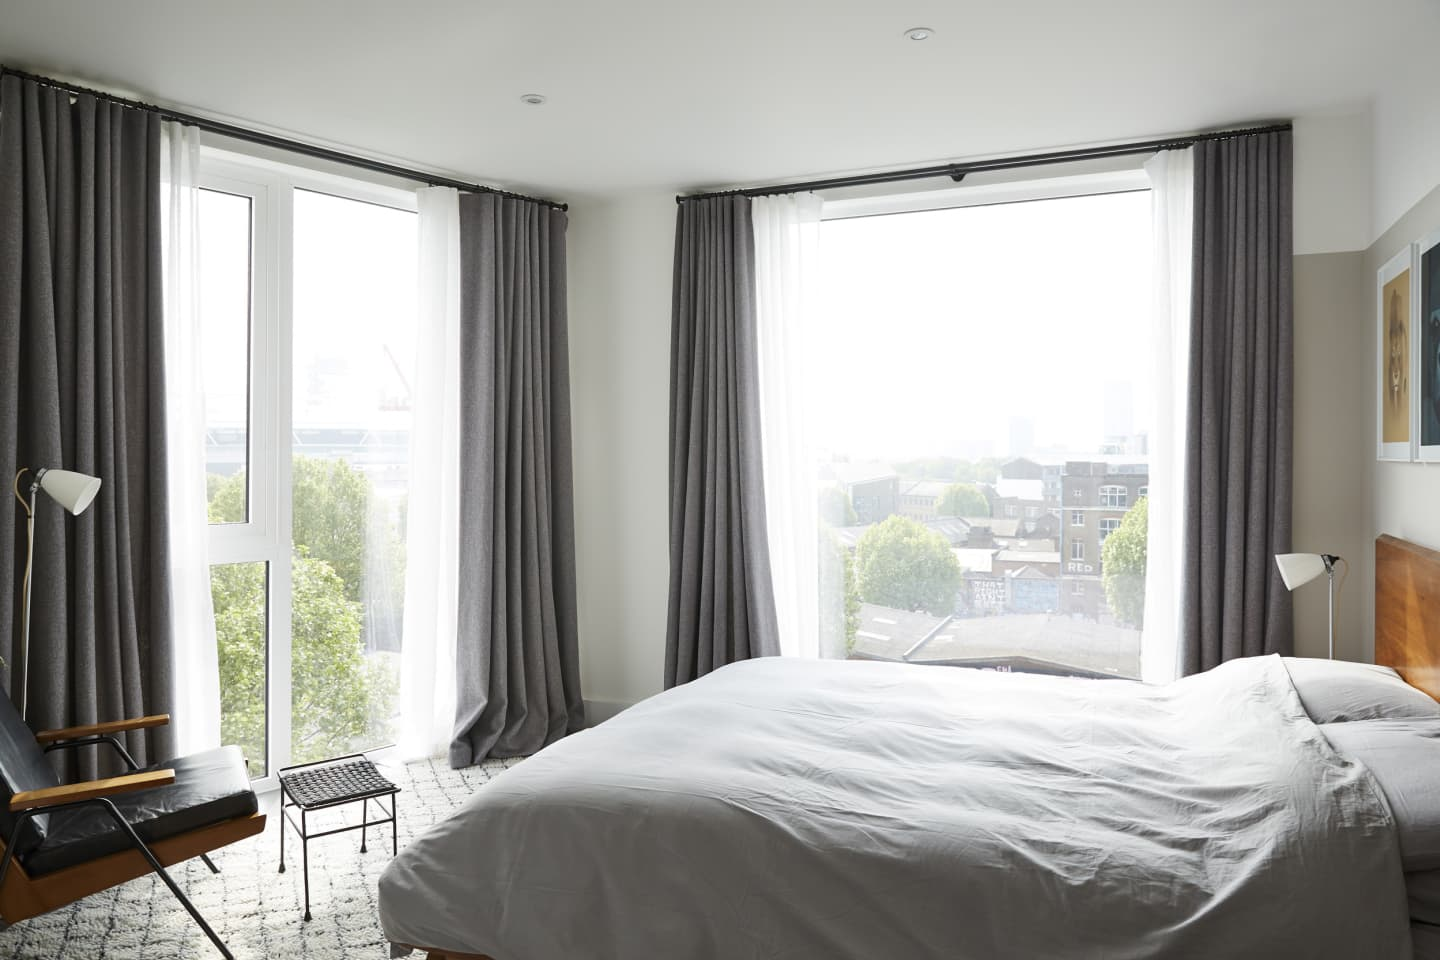 White bedroom interior with grey curtains